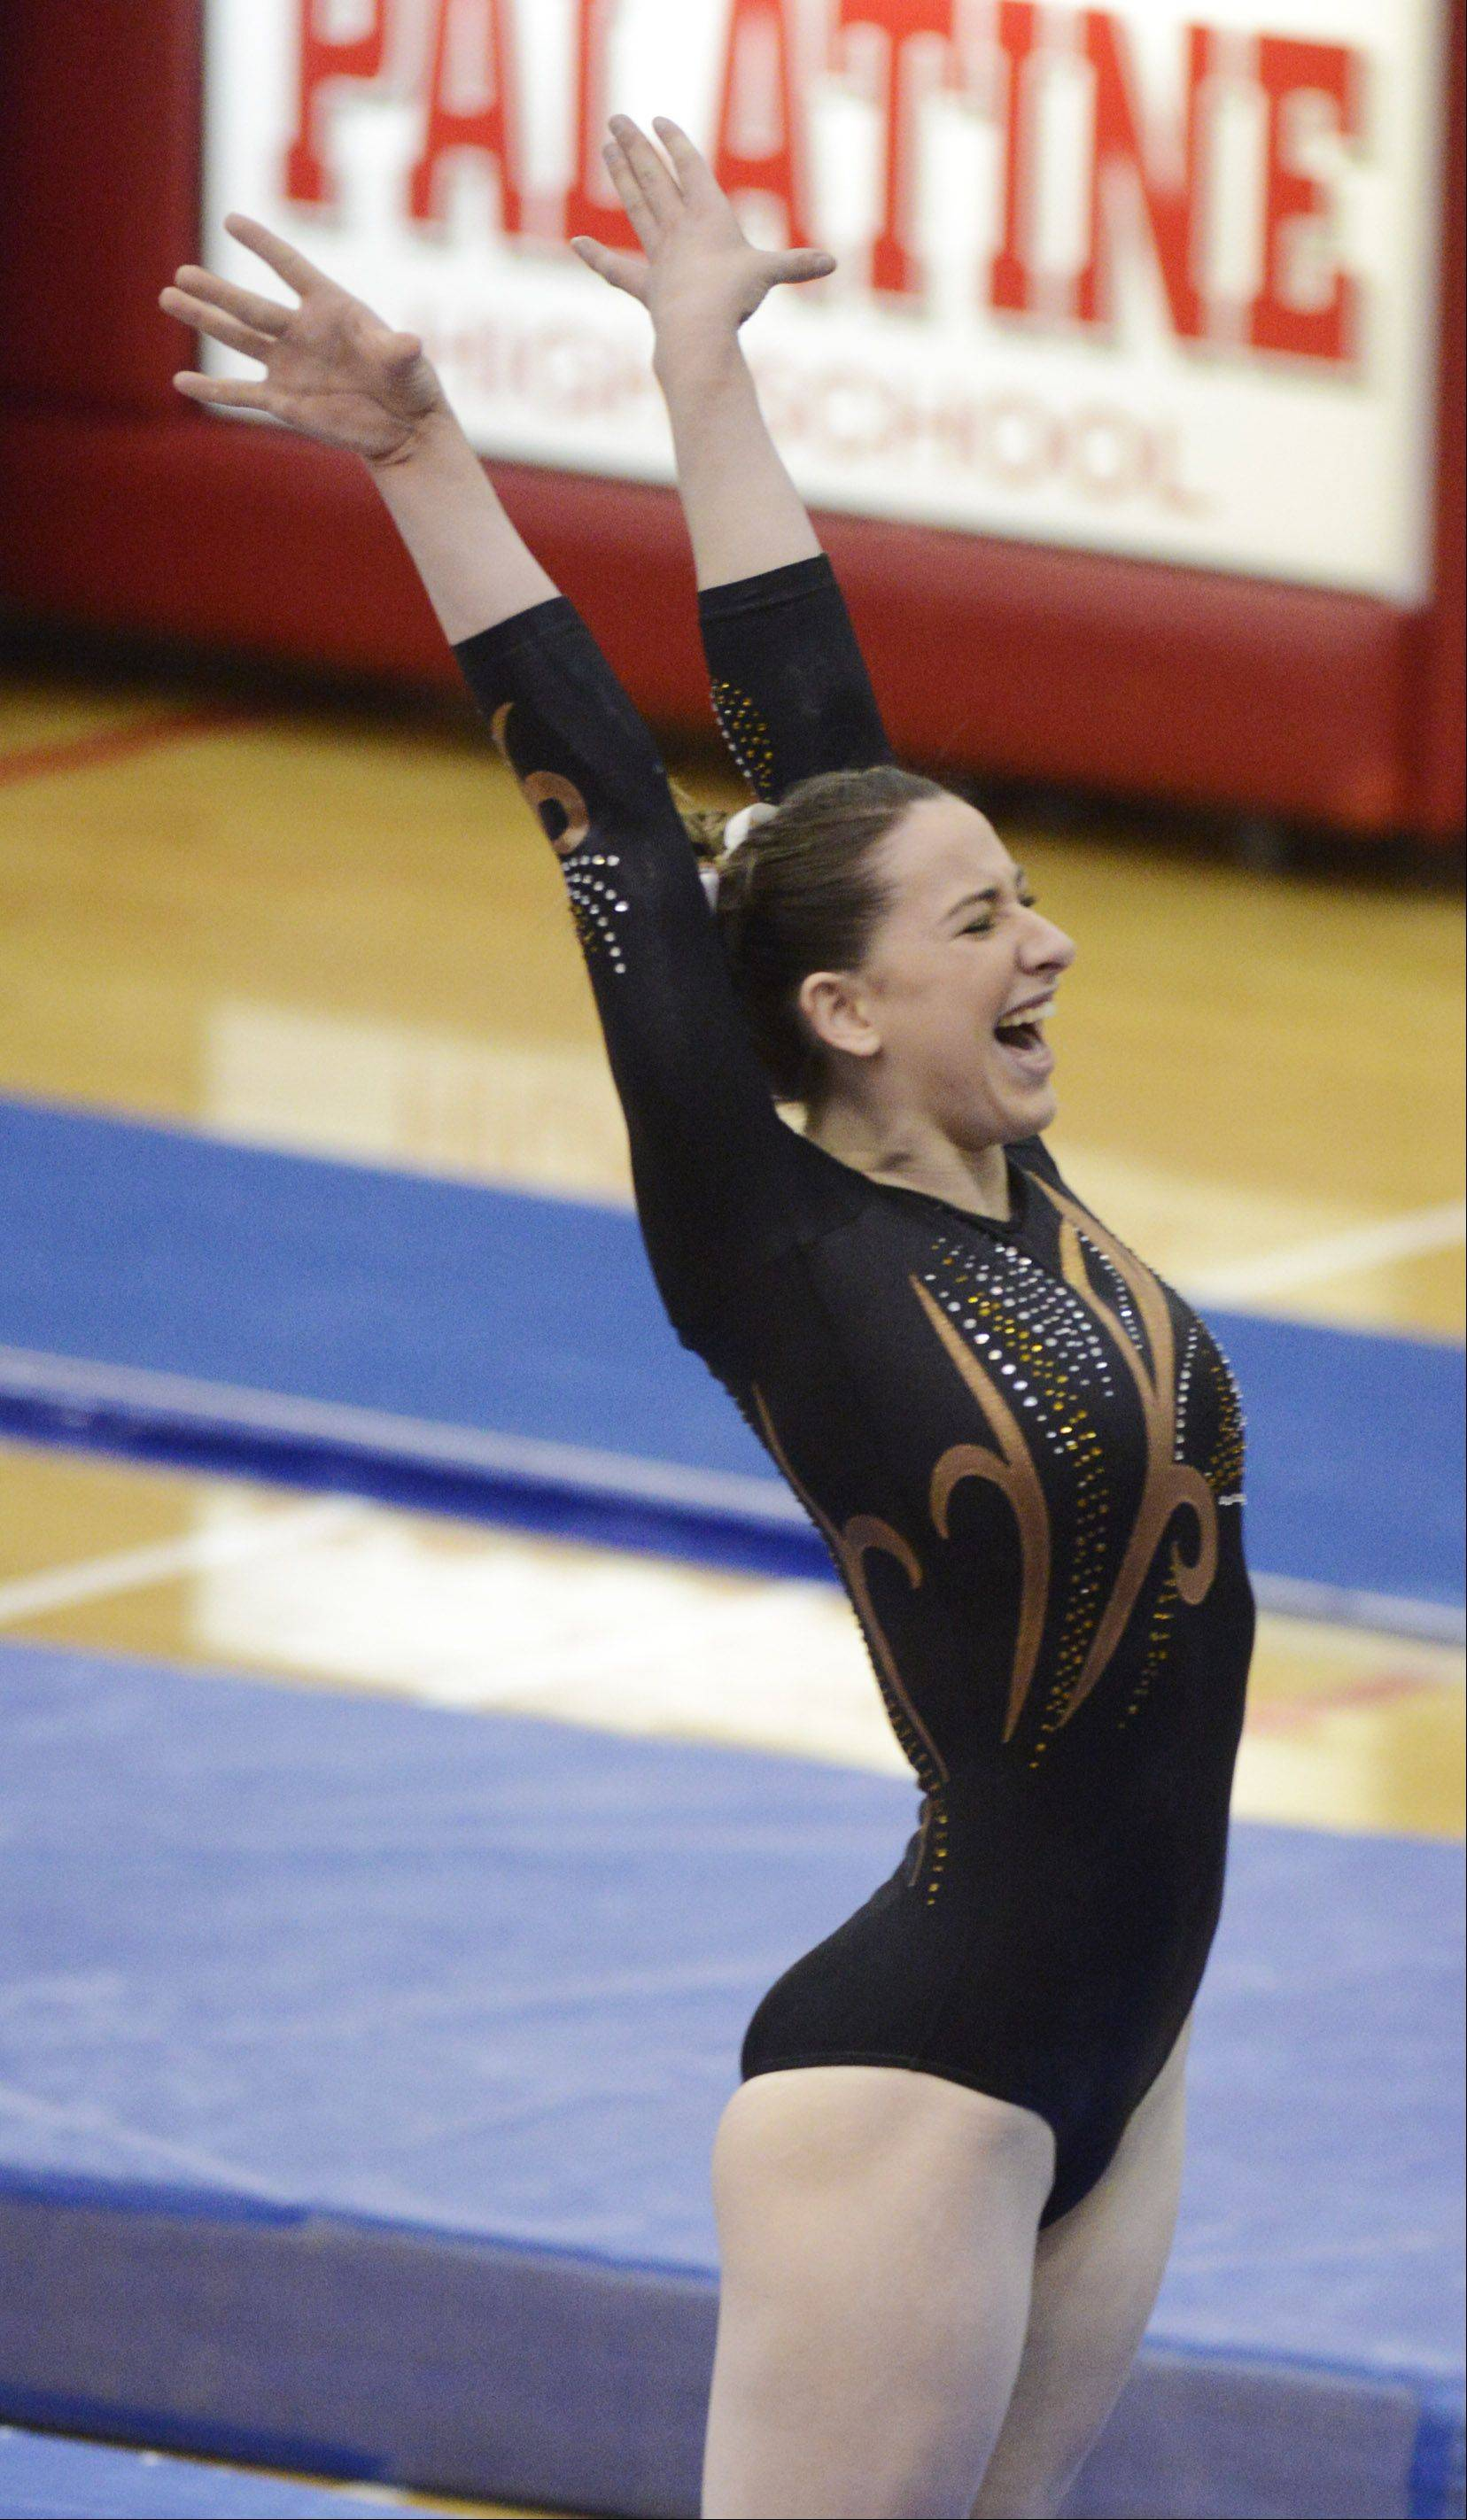 Carmel's Lauren Feely celebrates her performance on balance beam during the girls gymnastics state meet prelims at Palatine on Friday. The Corsairs senior won the all-around and had the top efforts on floor exercise, vault and beam.